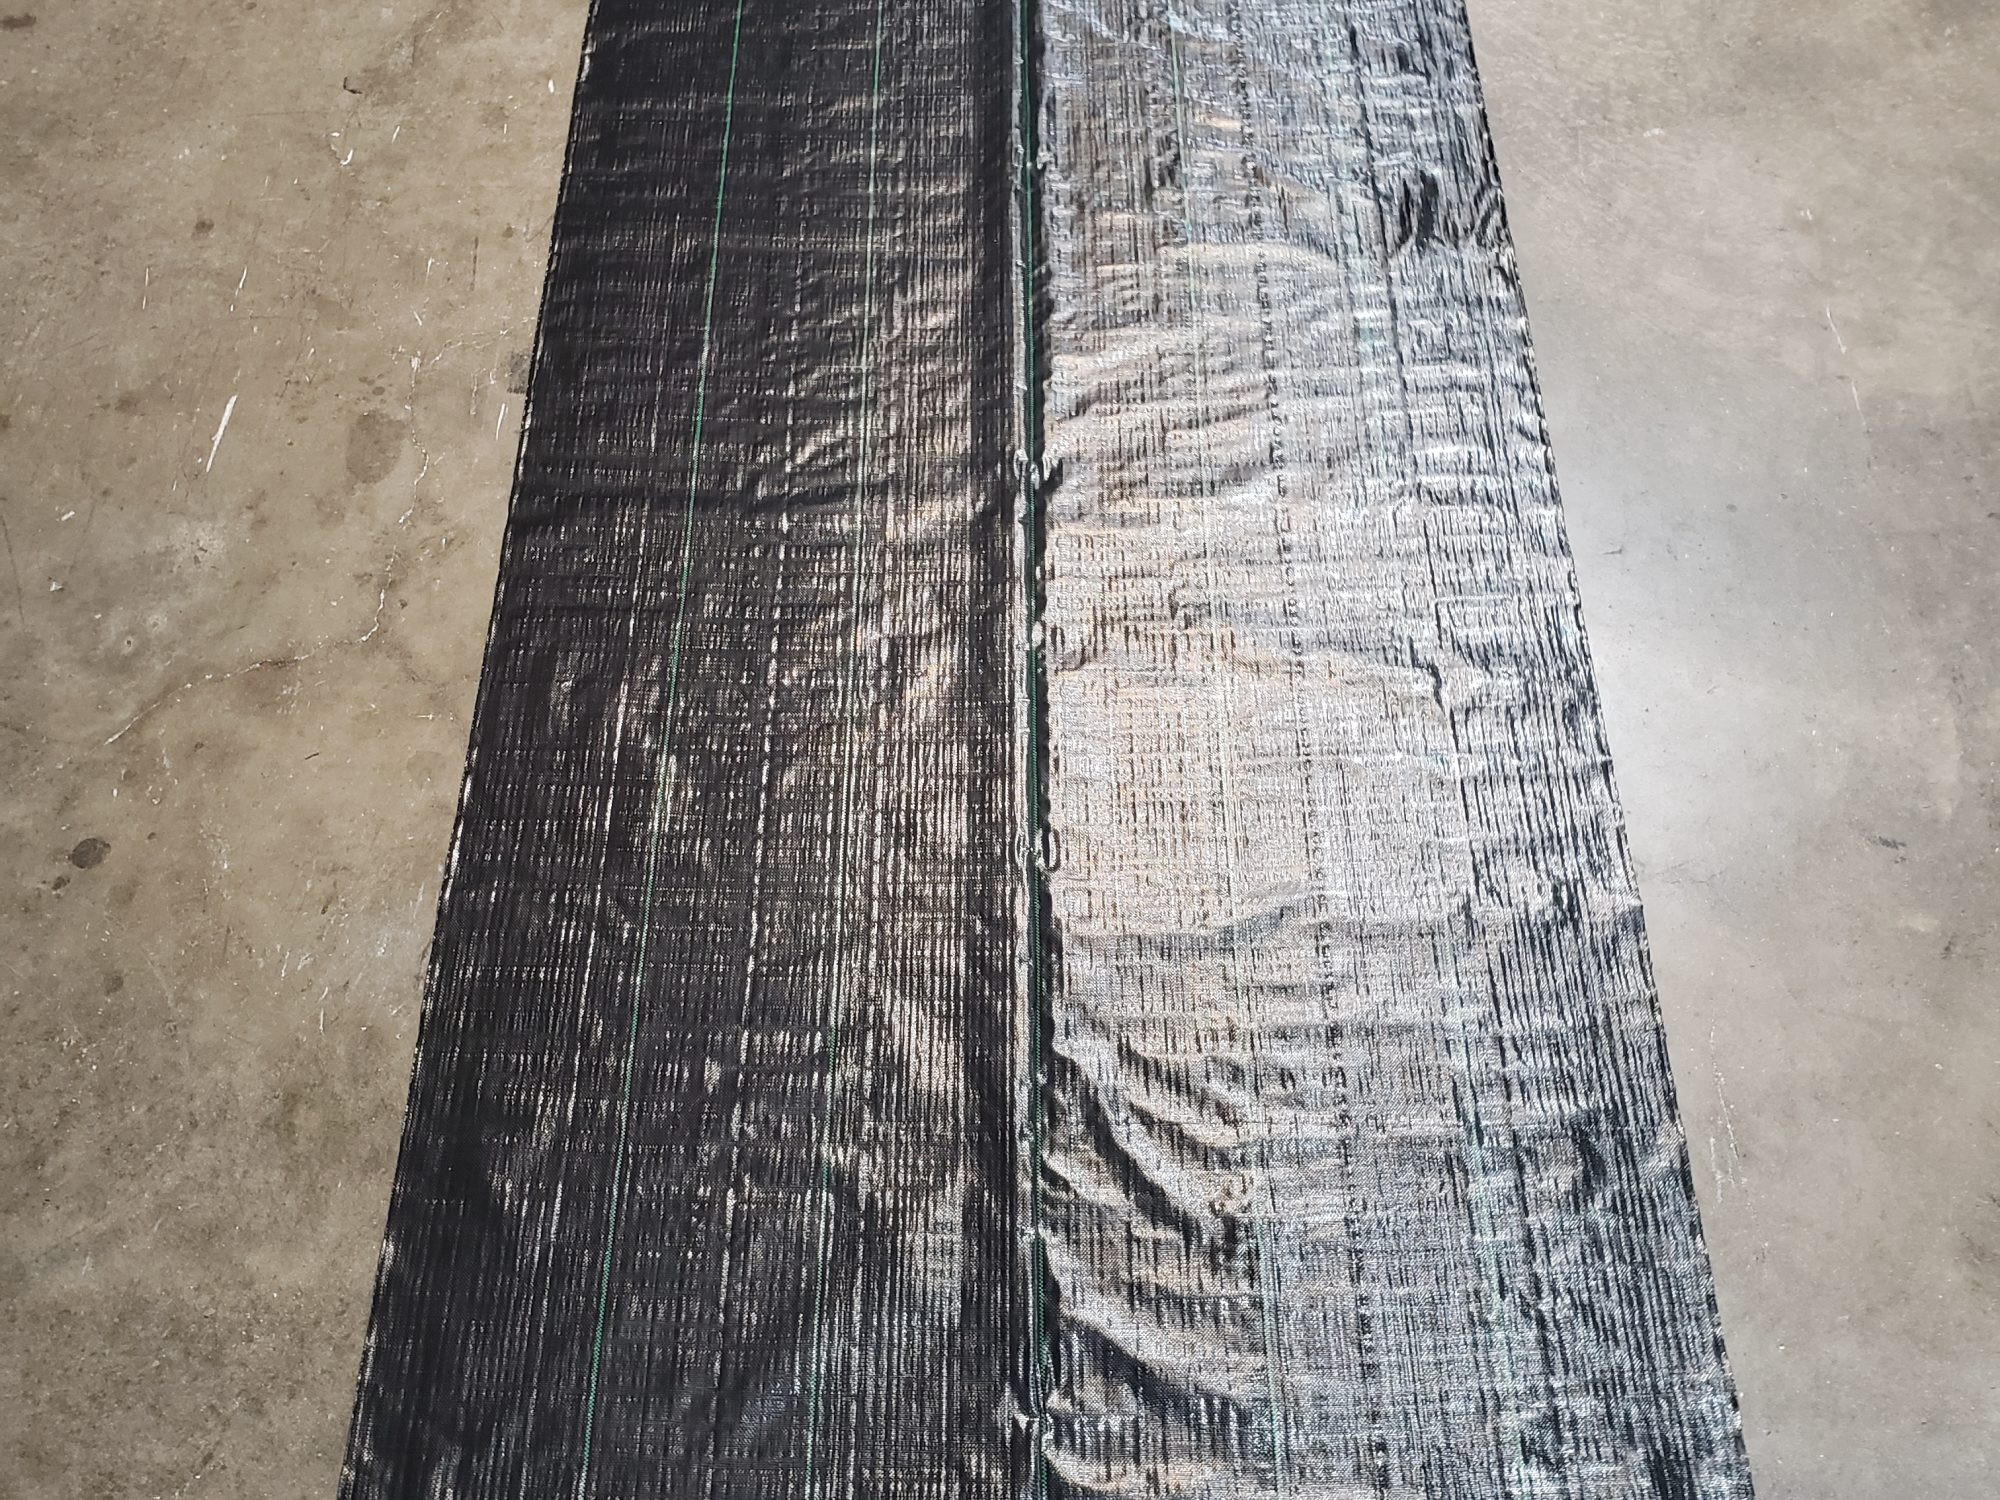 Underlayment weed barrier rolled out